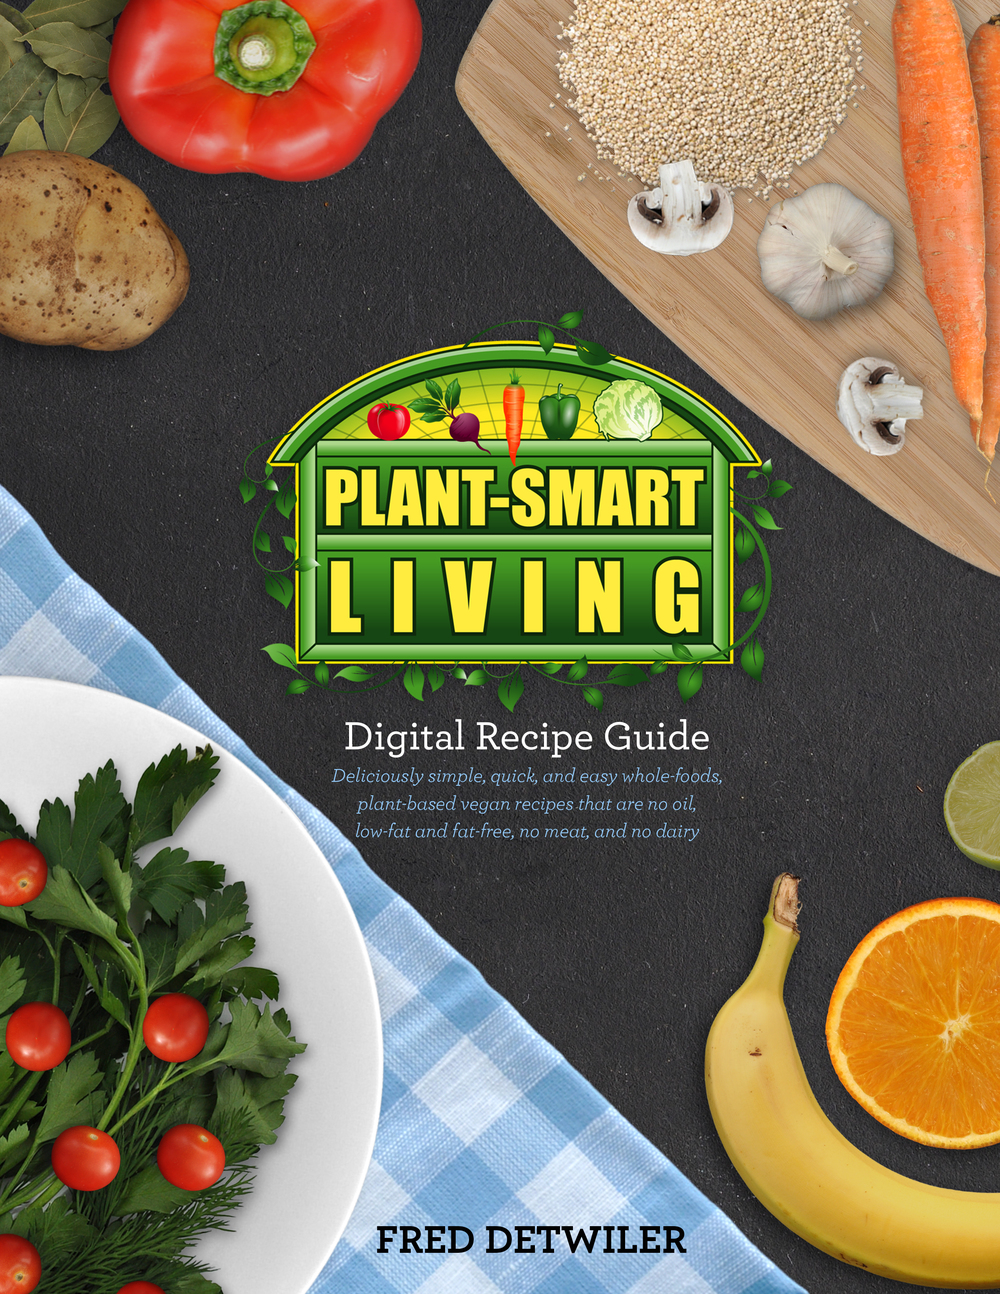 plant-smart-living-digital-recipe-guide-cover